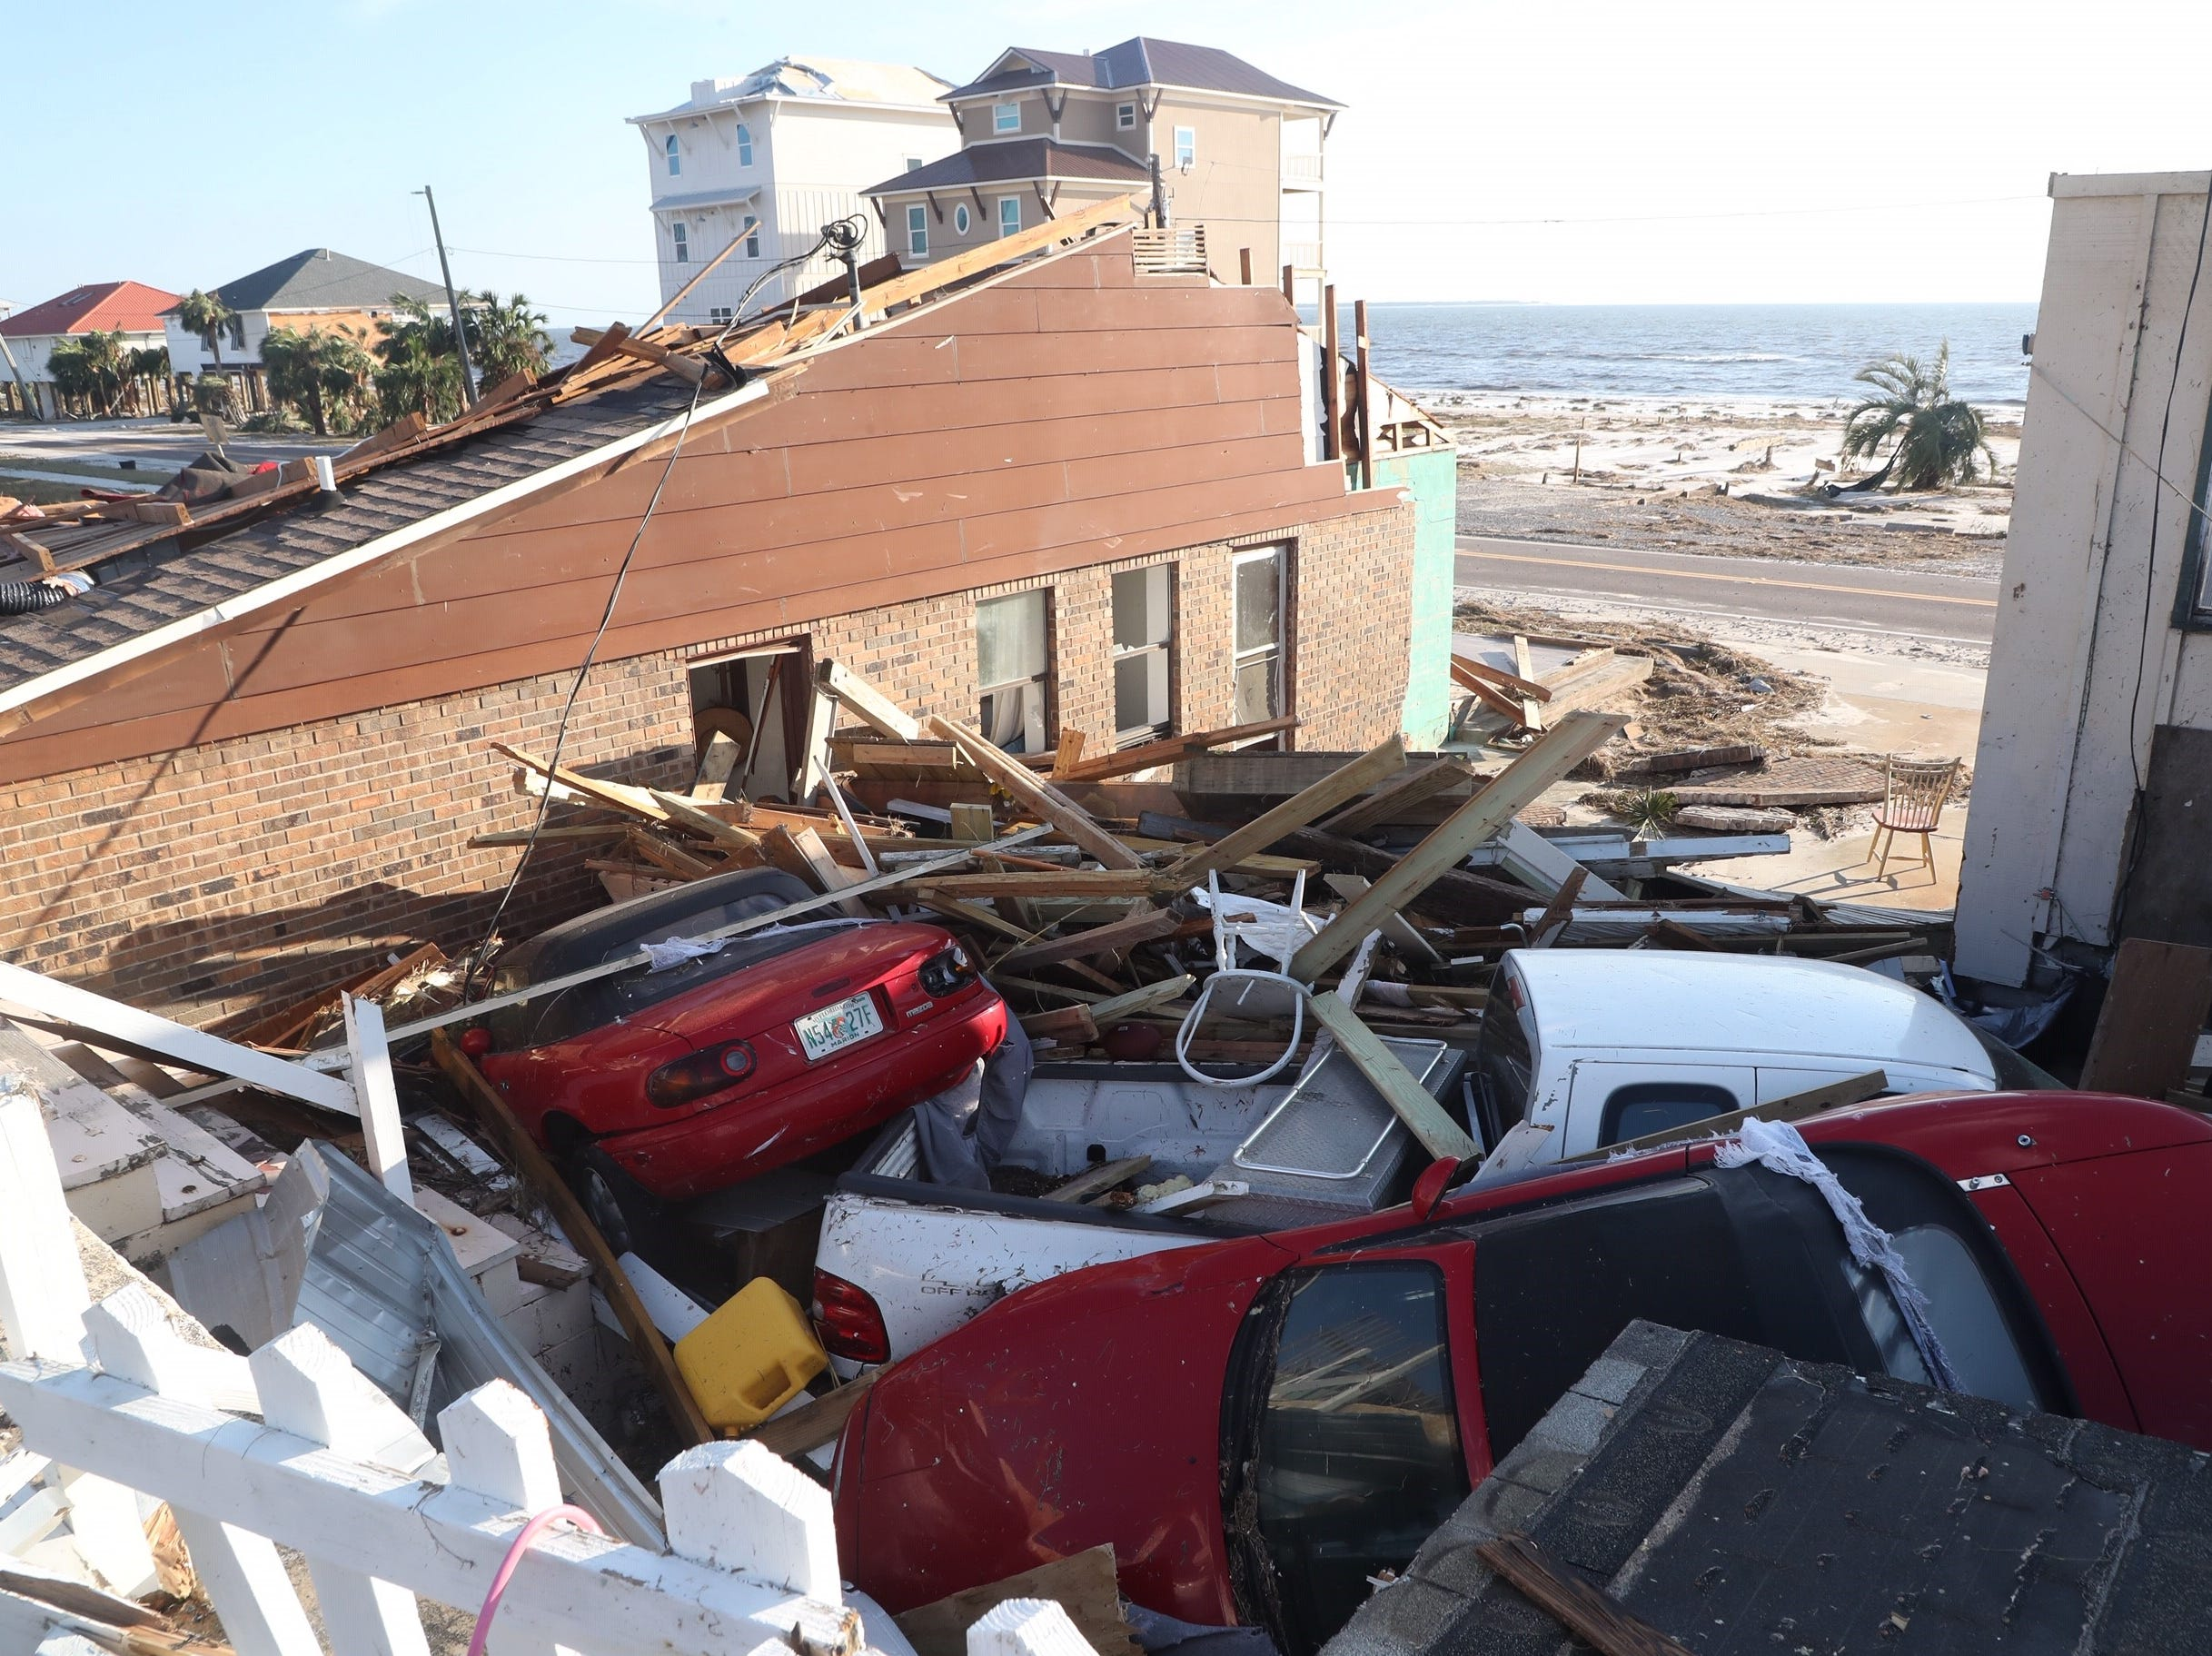 Three cars belonging to James and Cynthia Murphy lay in a pile of rubble after Hurricane Michael hit Mexico Beach.